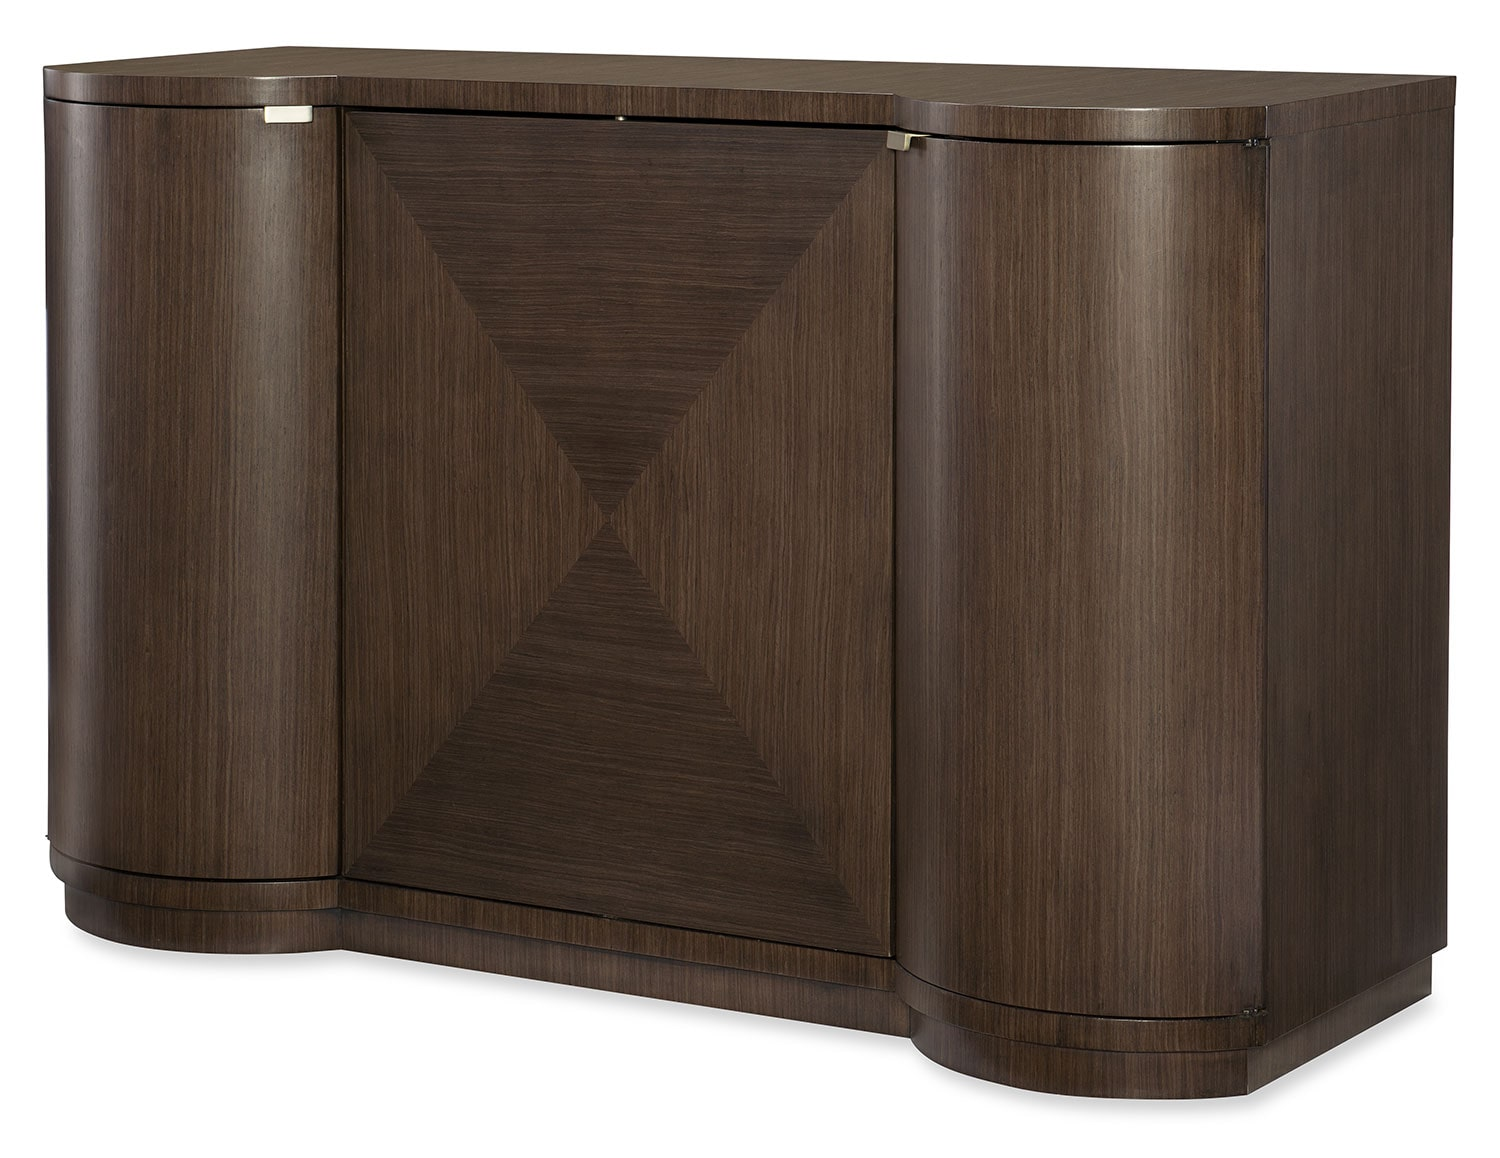 Dining Room Furniture - Rachael Ray Soho Bar Cabinet - Ash Brown